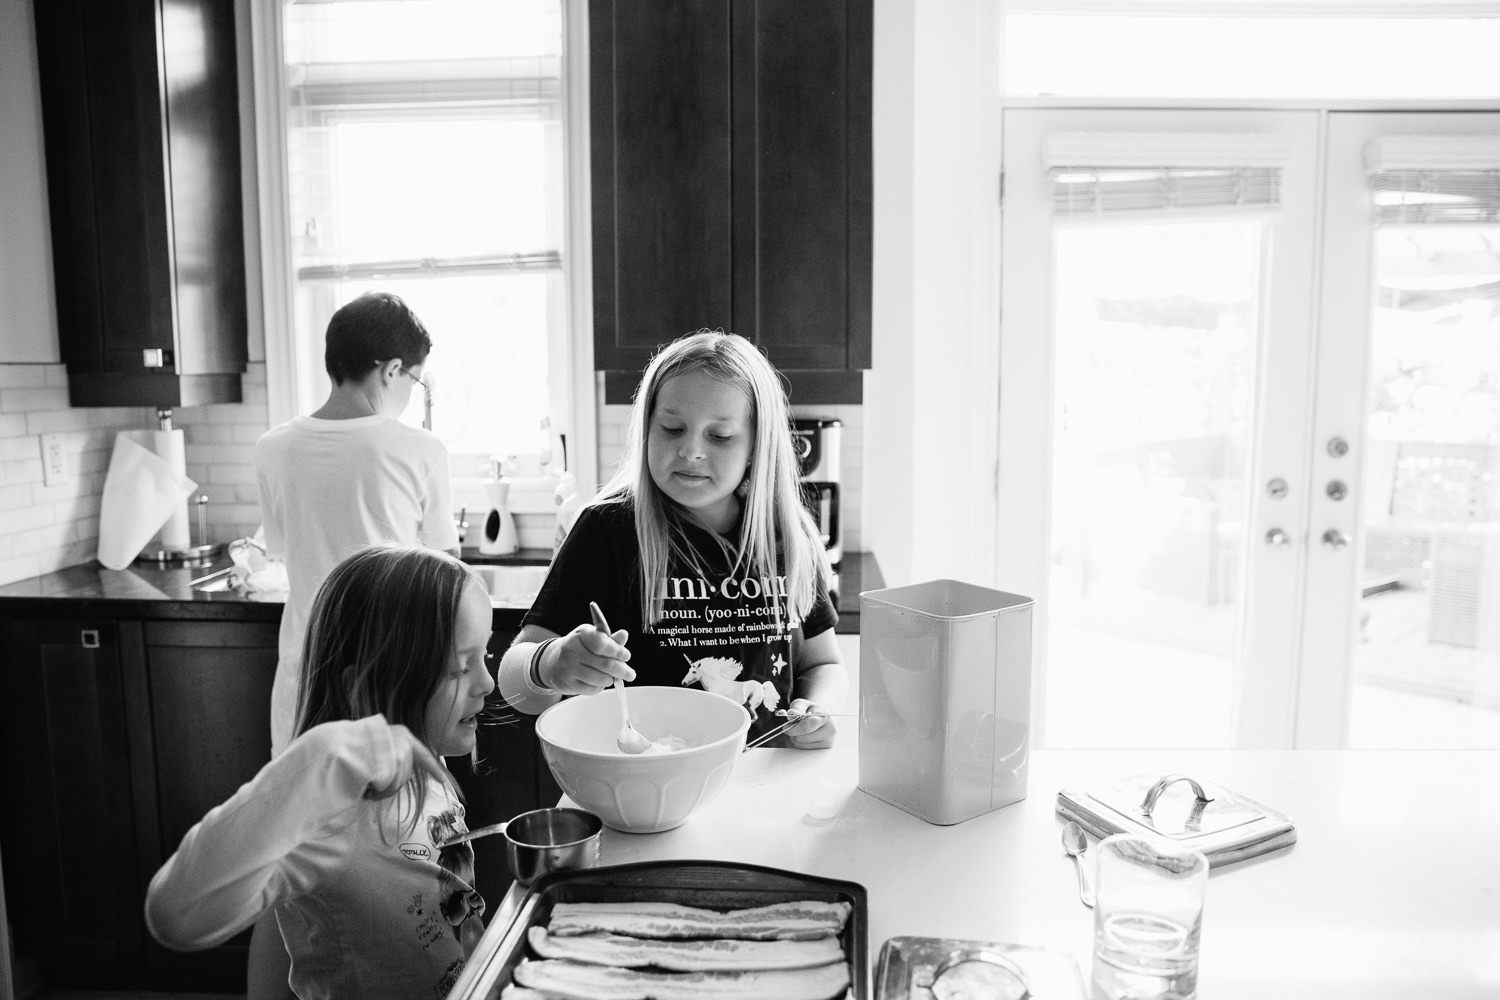 8 and 10 year old sisters standing at kitchen island mixing pancake batter for family brunch, 13 year old brother at sink behind them - Stouffville Lifestyle Photography